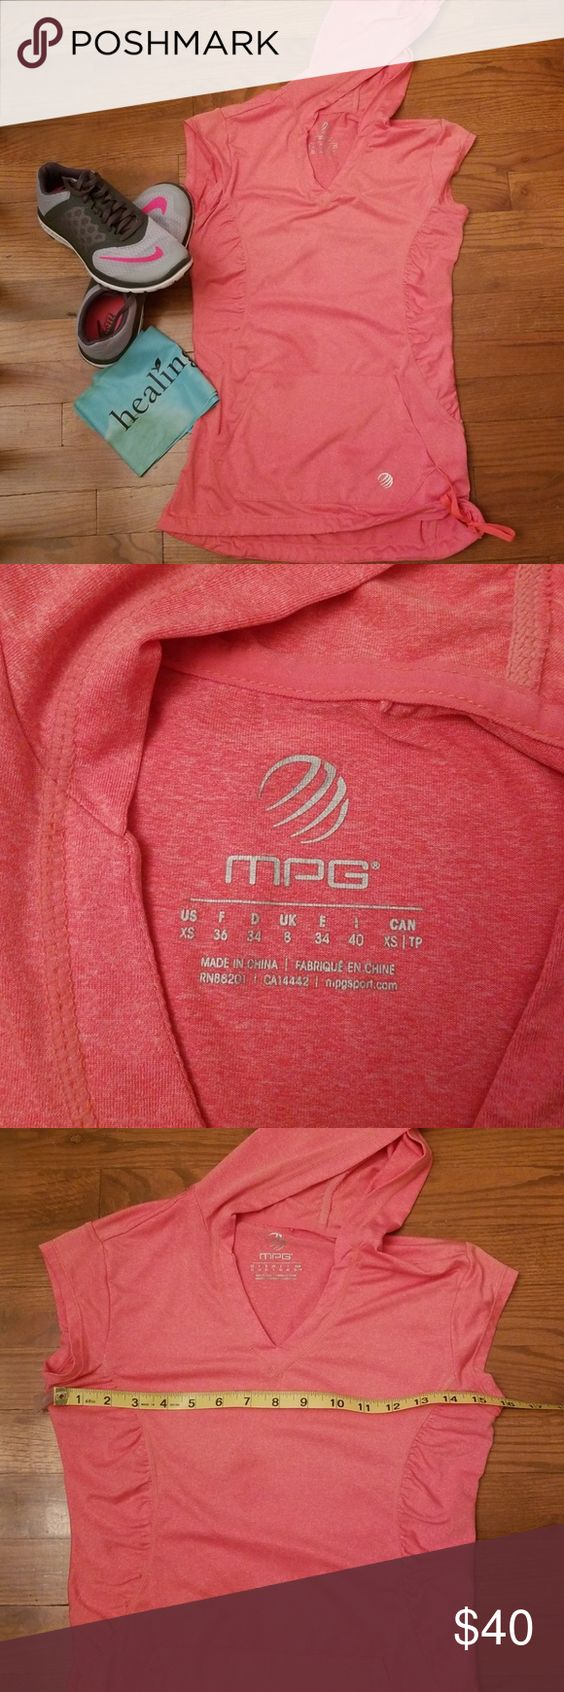 MPG Workout Vest Hoodie MPG Workout Vest Hoodie, Front Pocket, Drawstring Waist, Tangerine In Color, Excellent Used Condition MPG Tops Sweatshirts & Hoodies